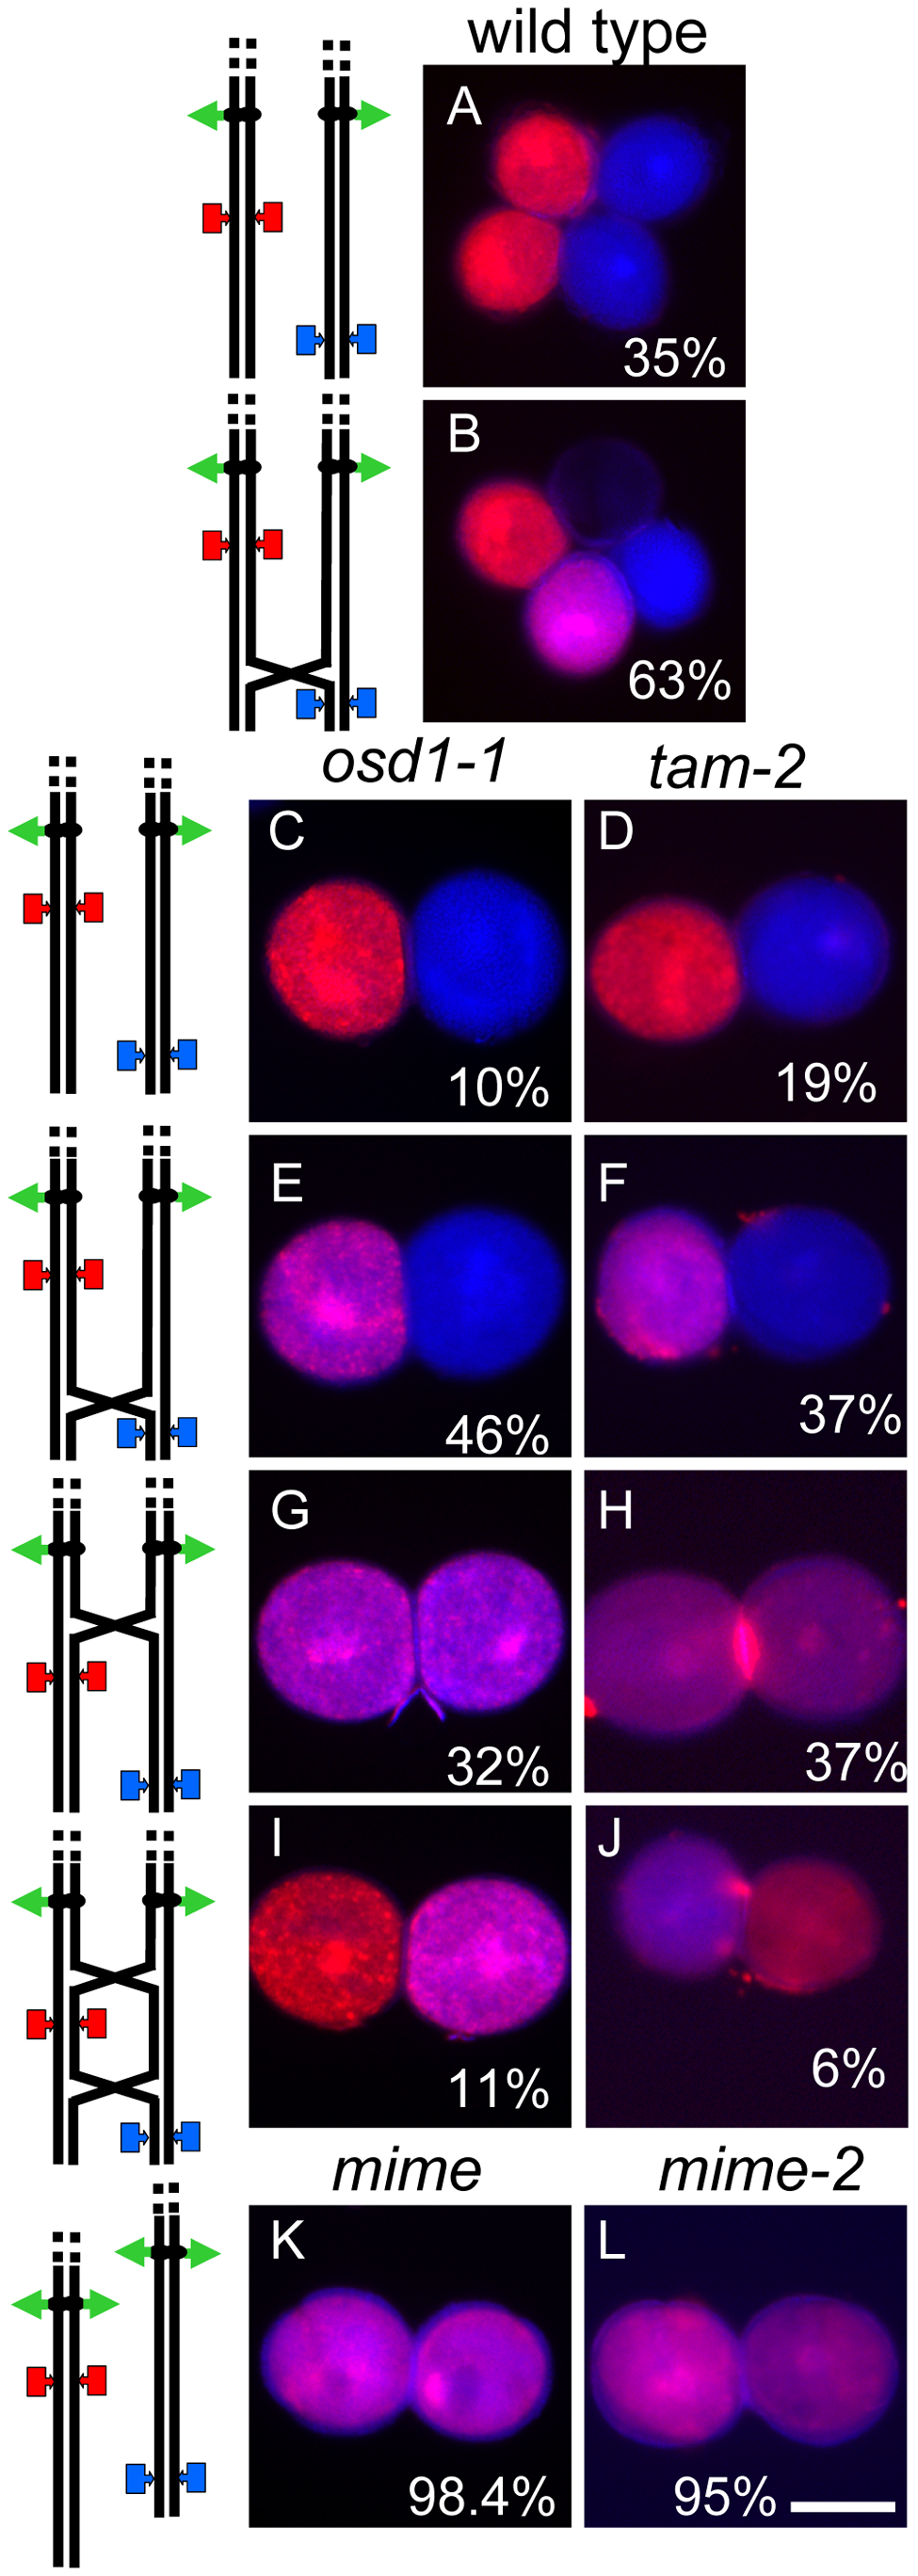 Two-locus (FTL1273 red, FTL993 blue) segregation pattern in pollen.